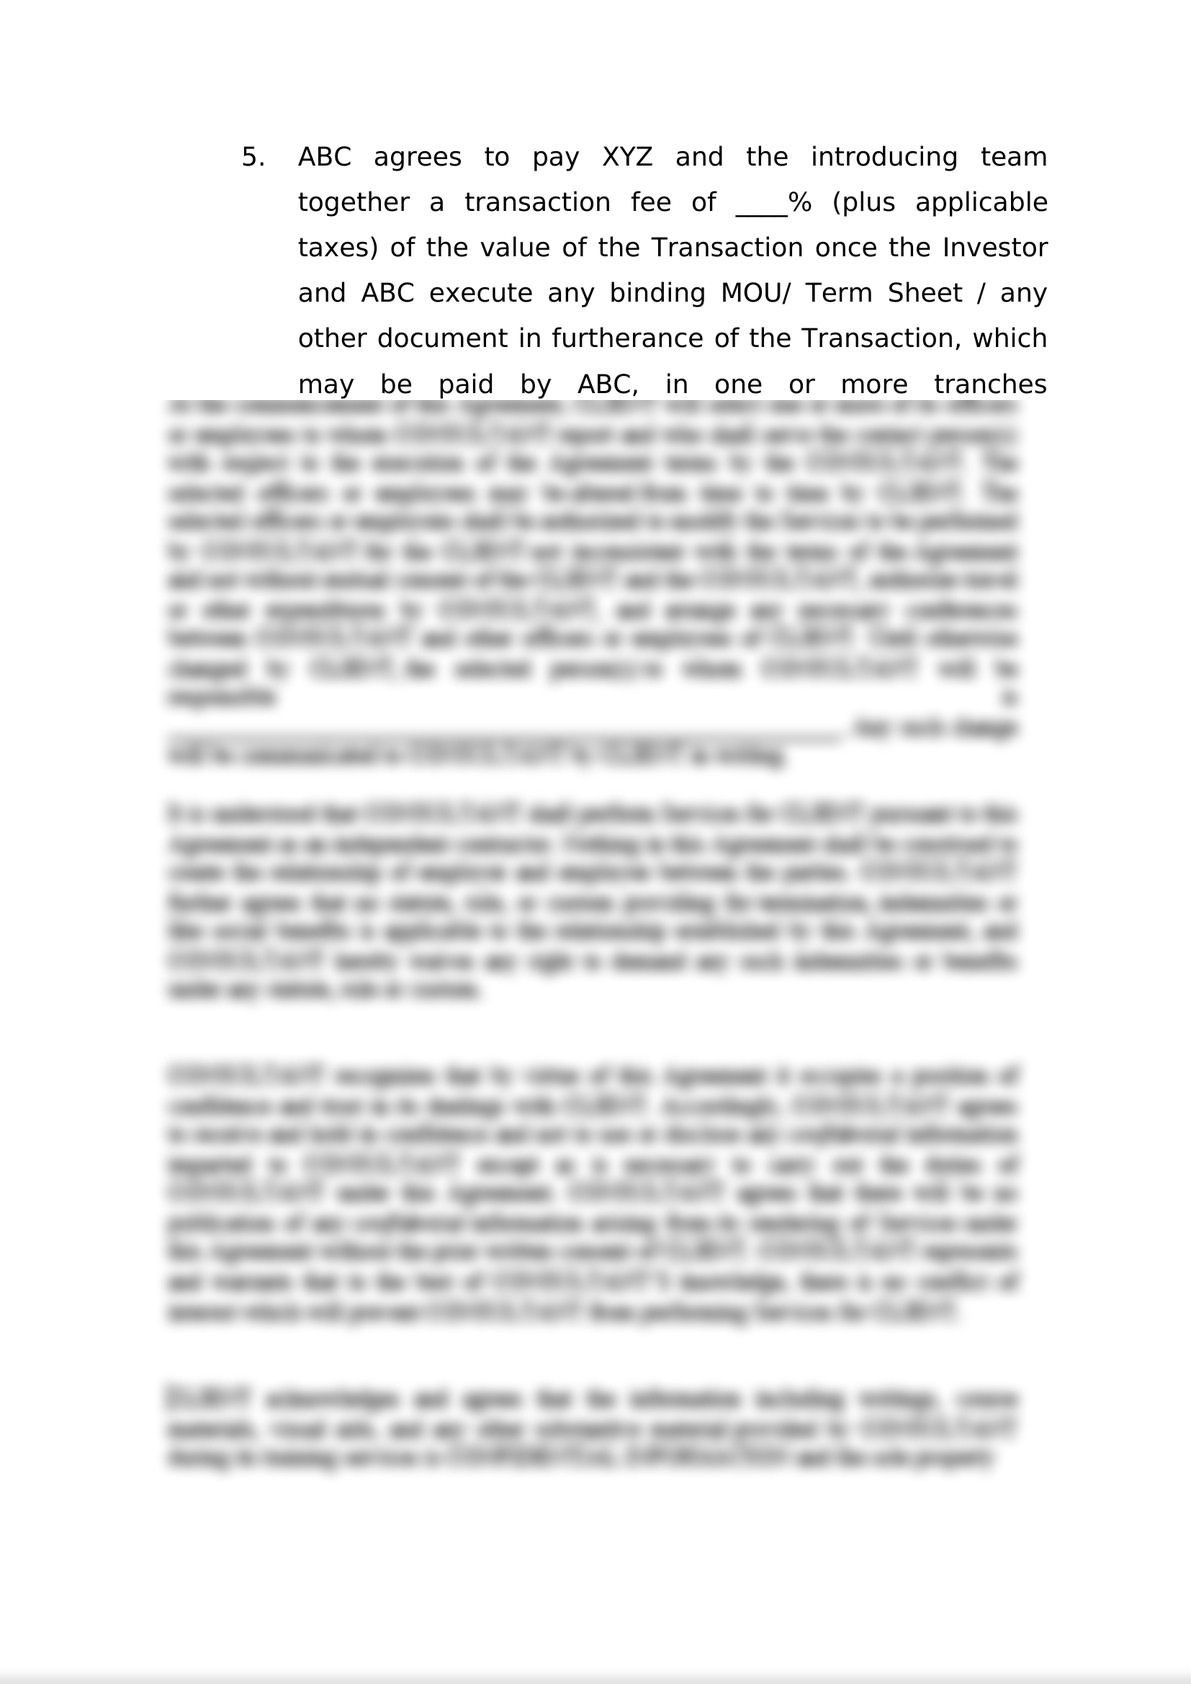 Engagement Letter for M&A-3